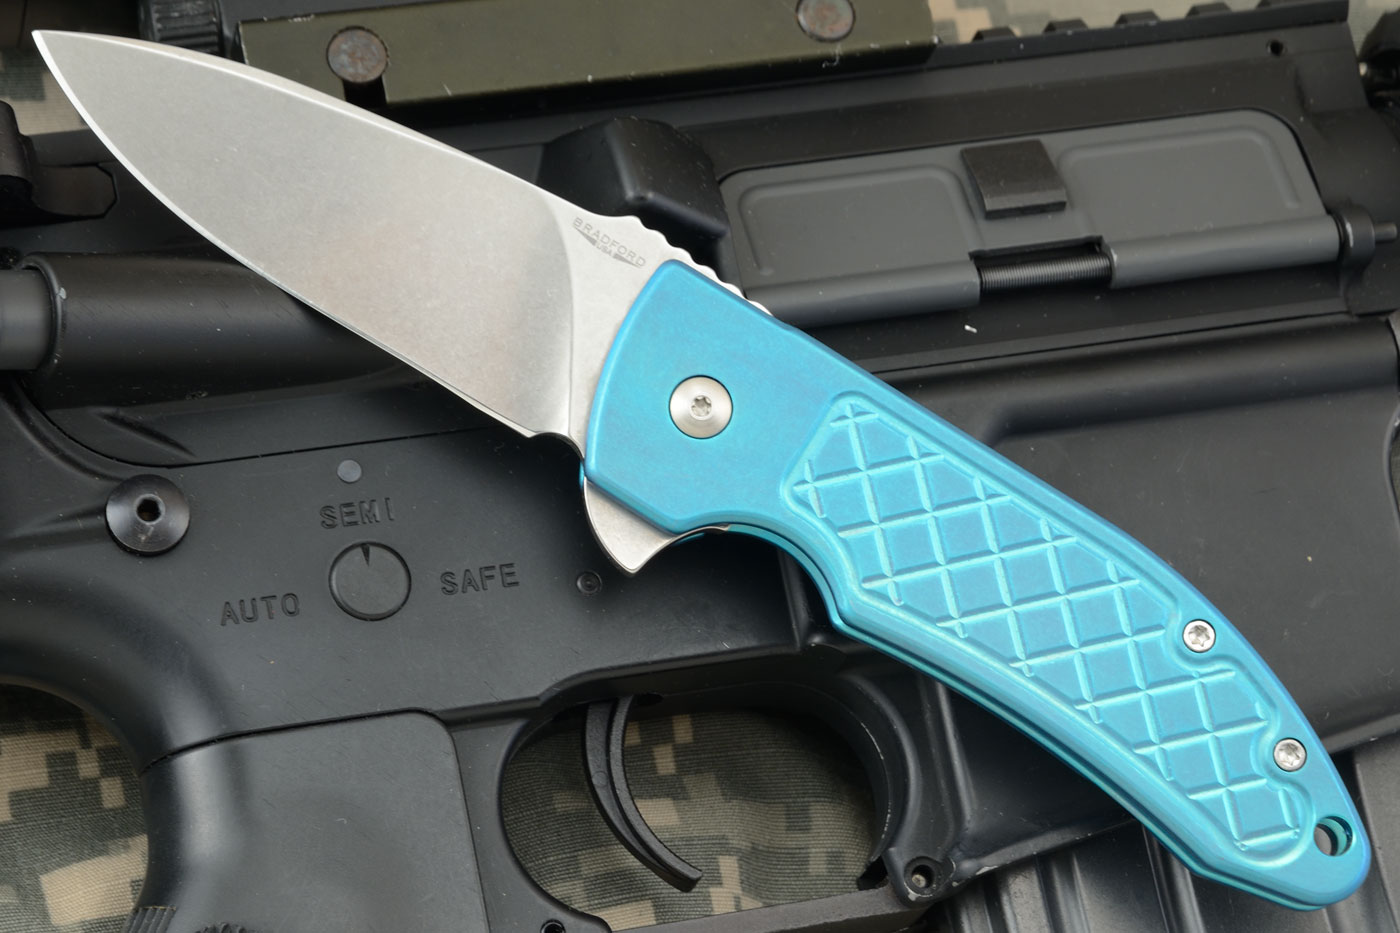 Guardian 3 Flipper with Turquoise Anodized Titanium